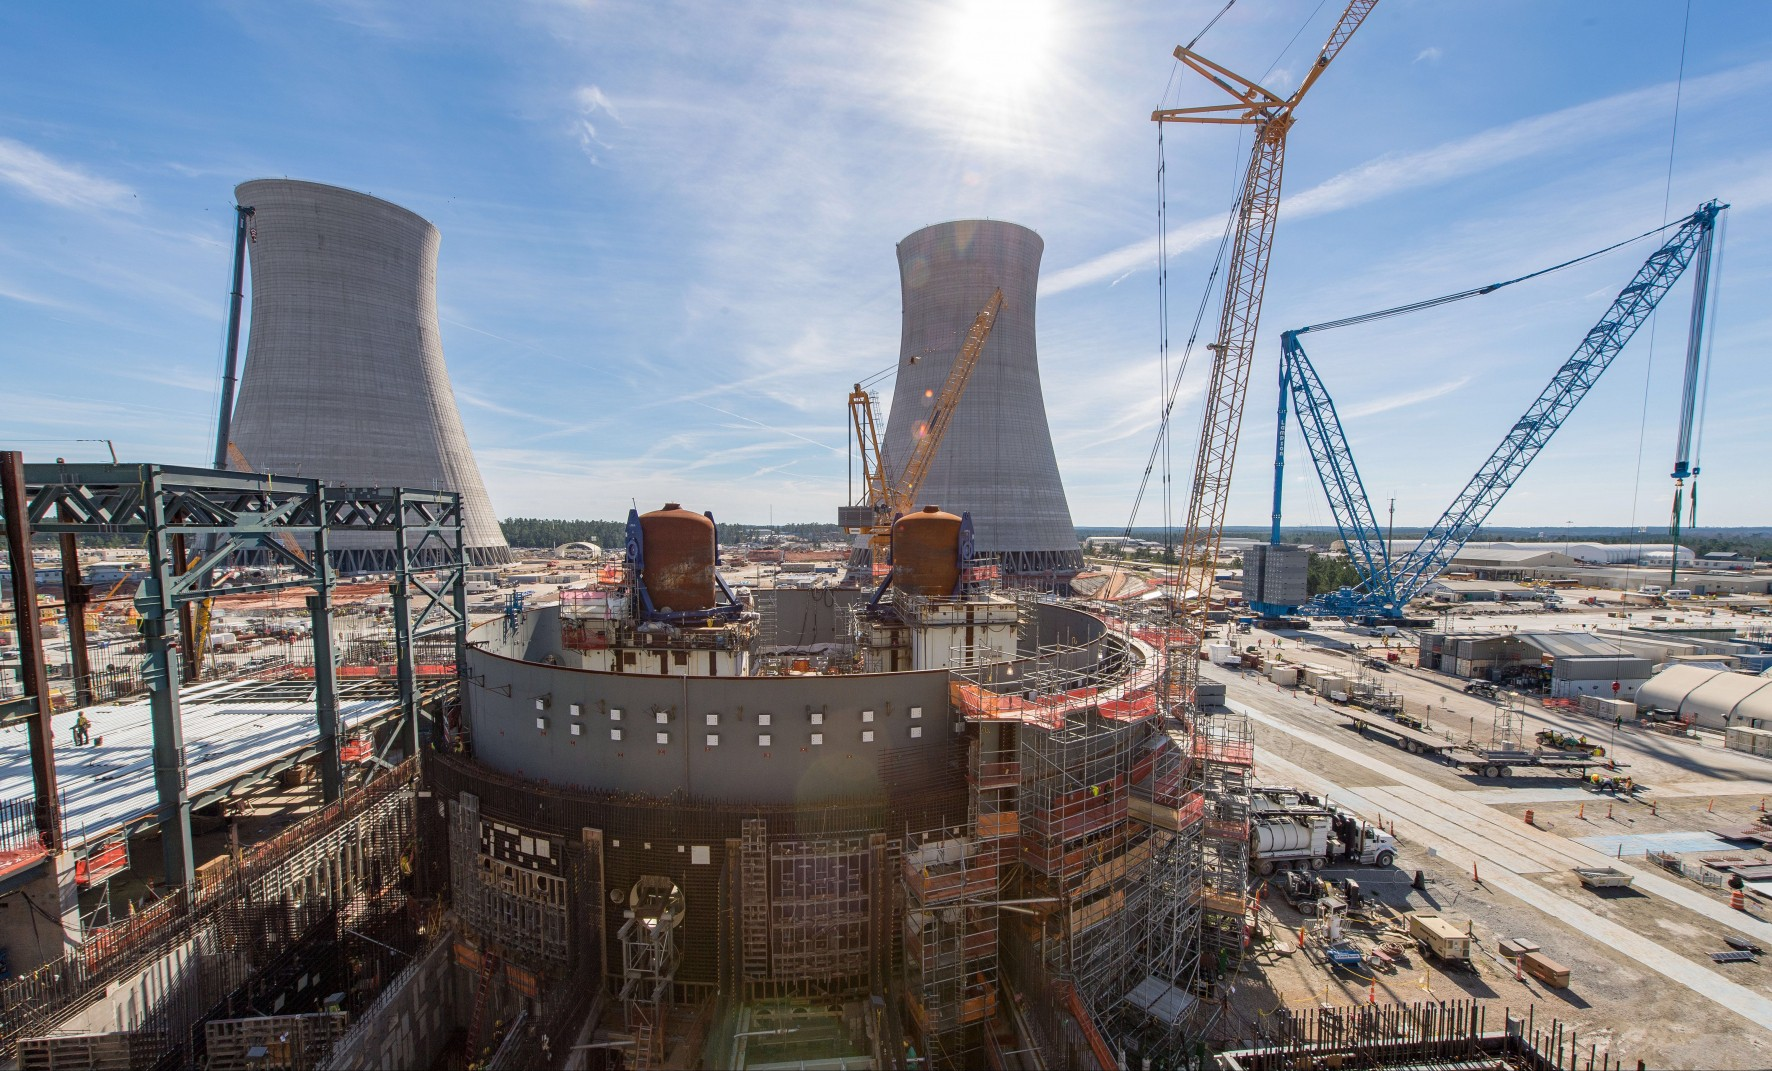 Image of behind schedule, over budget Vogtle nuclear plant